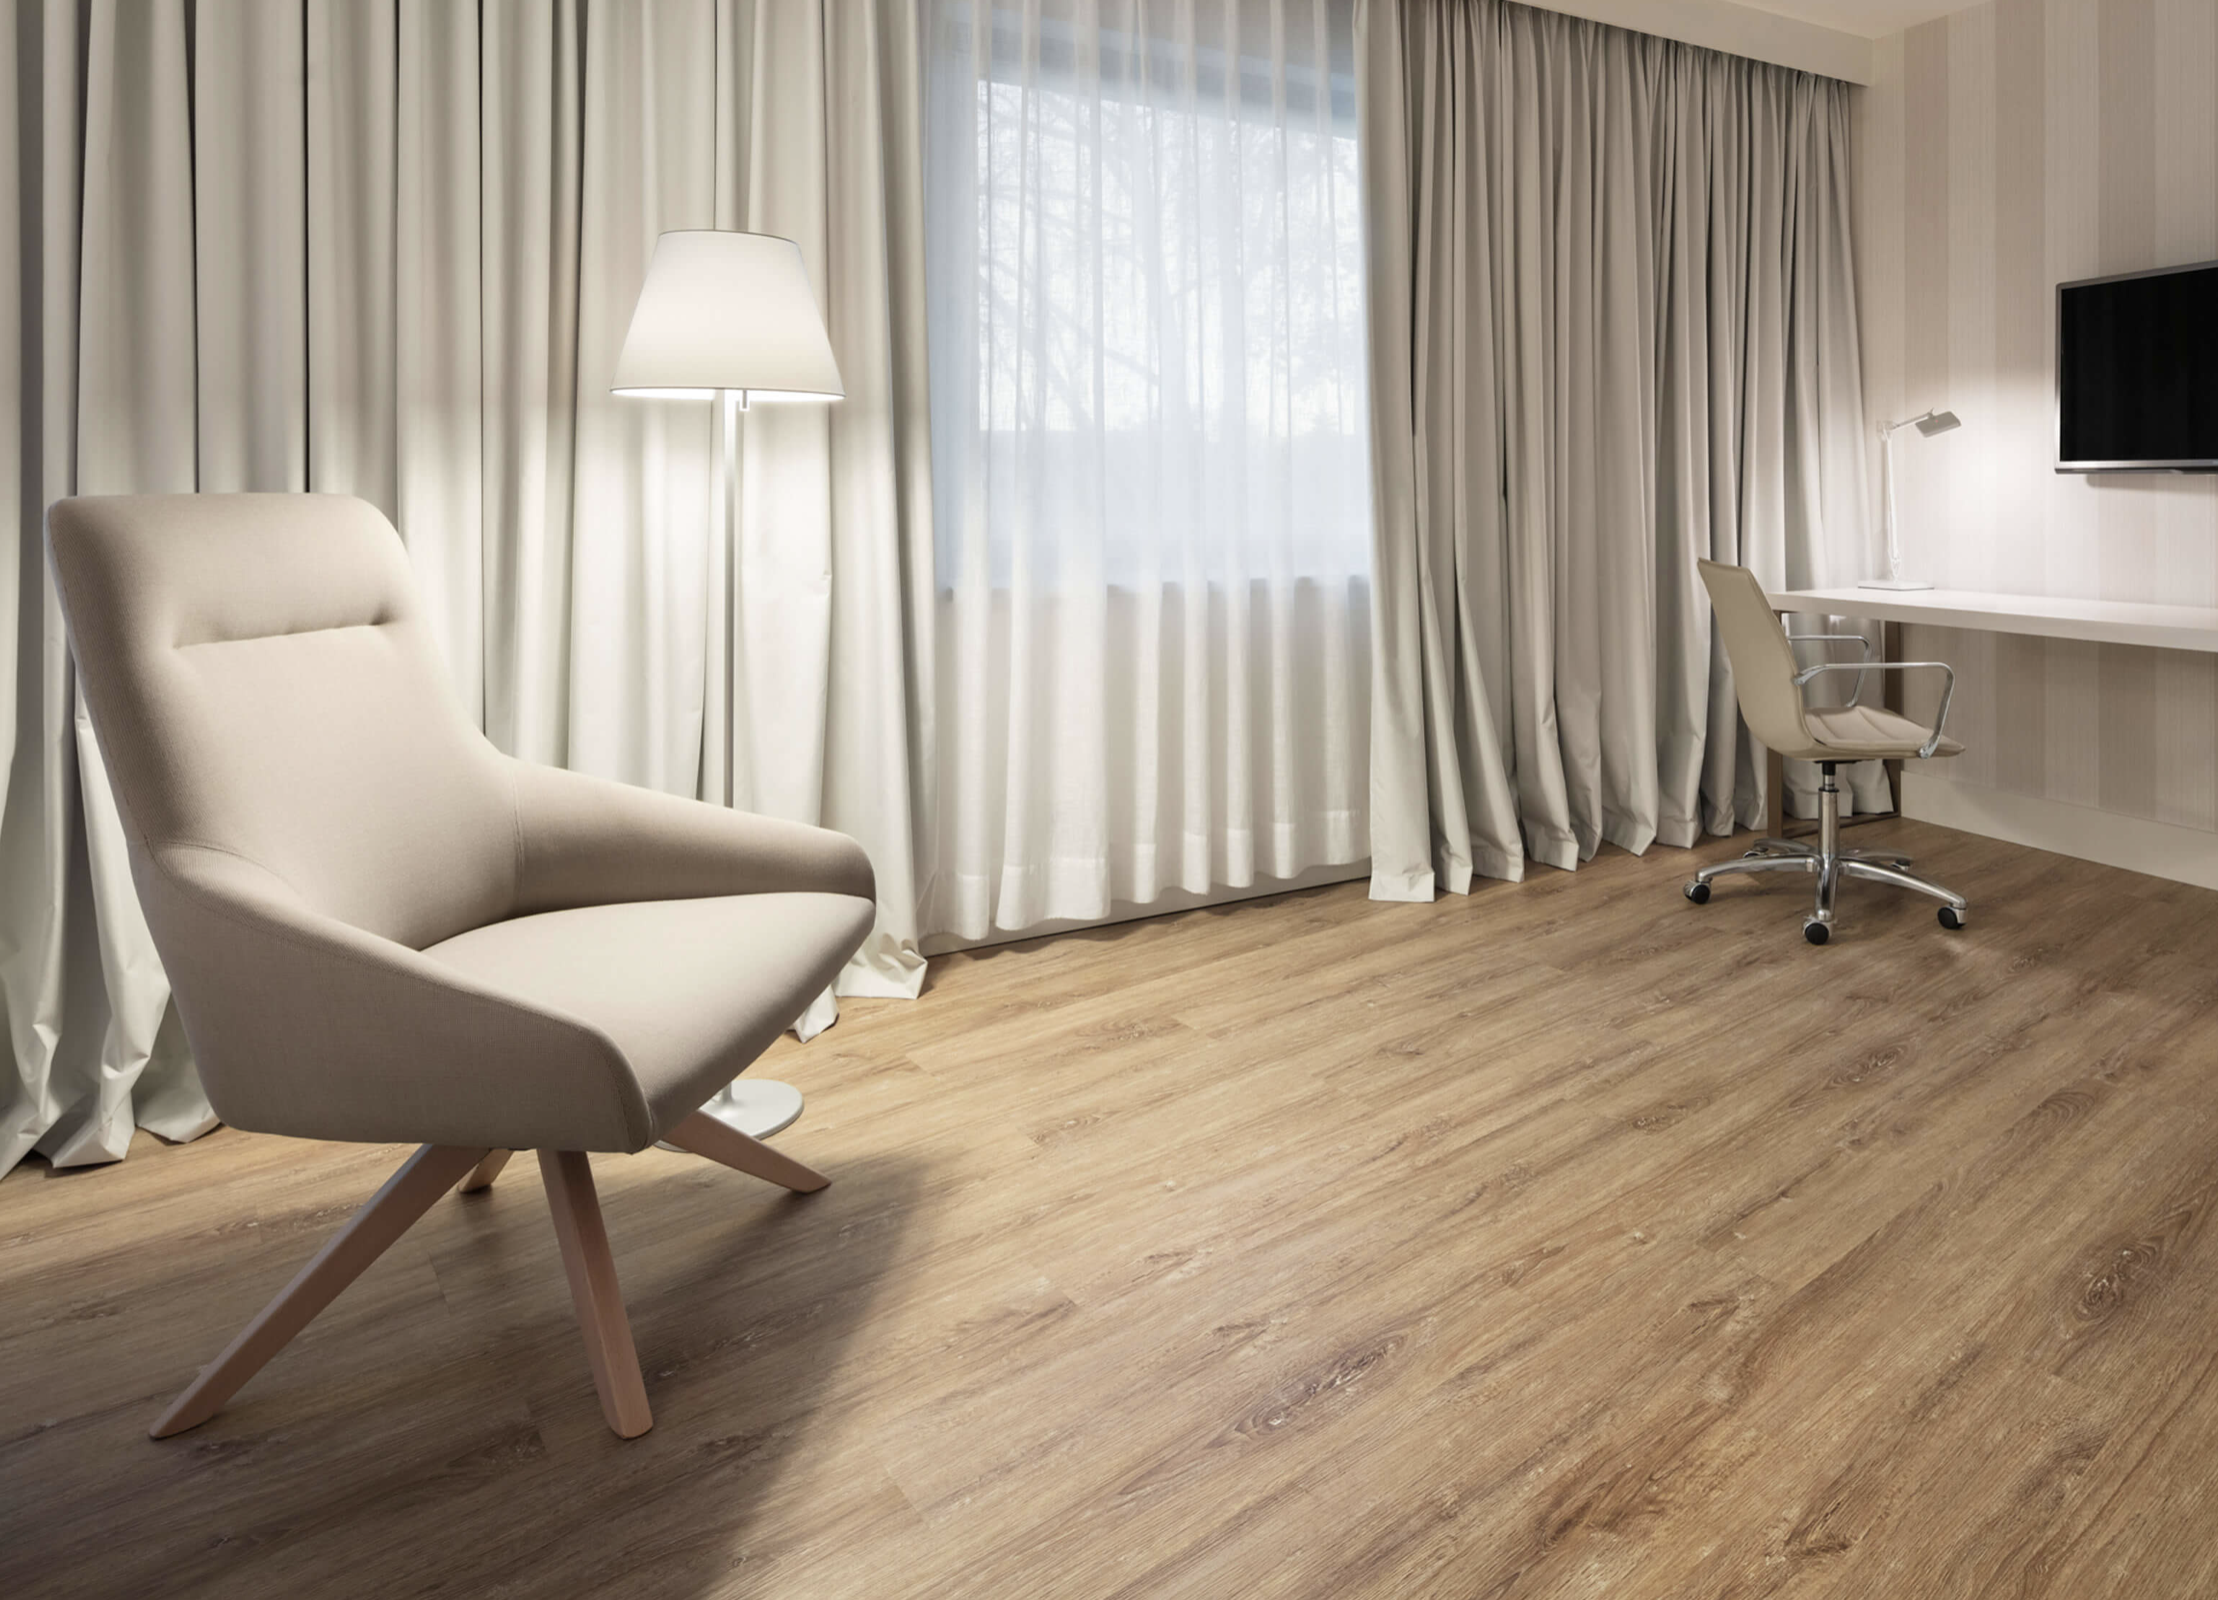 Wicanders' cork flooring now comes with a wood look finish